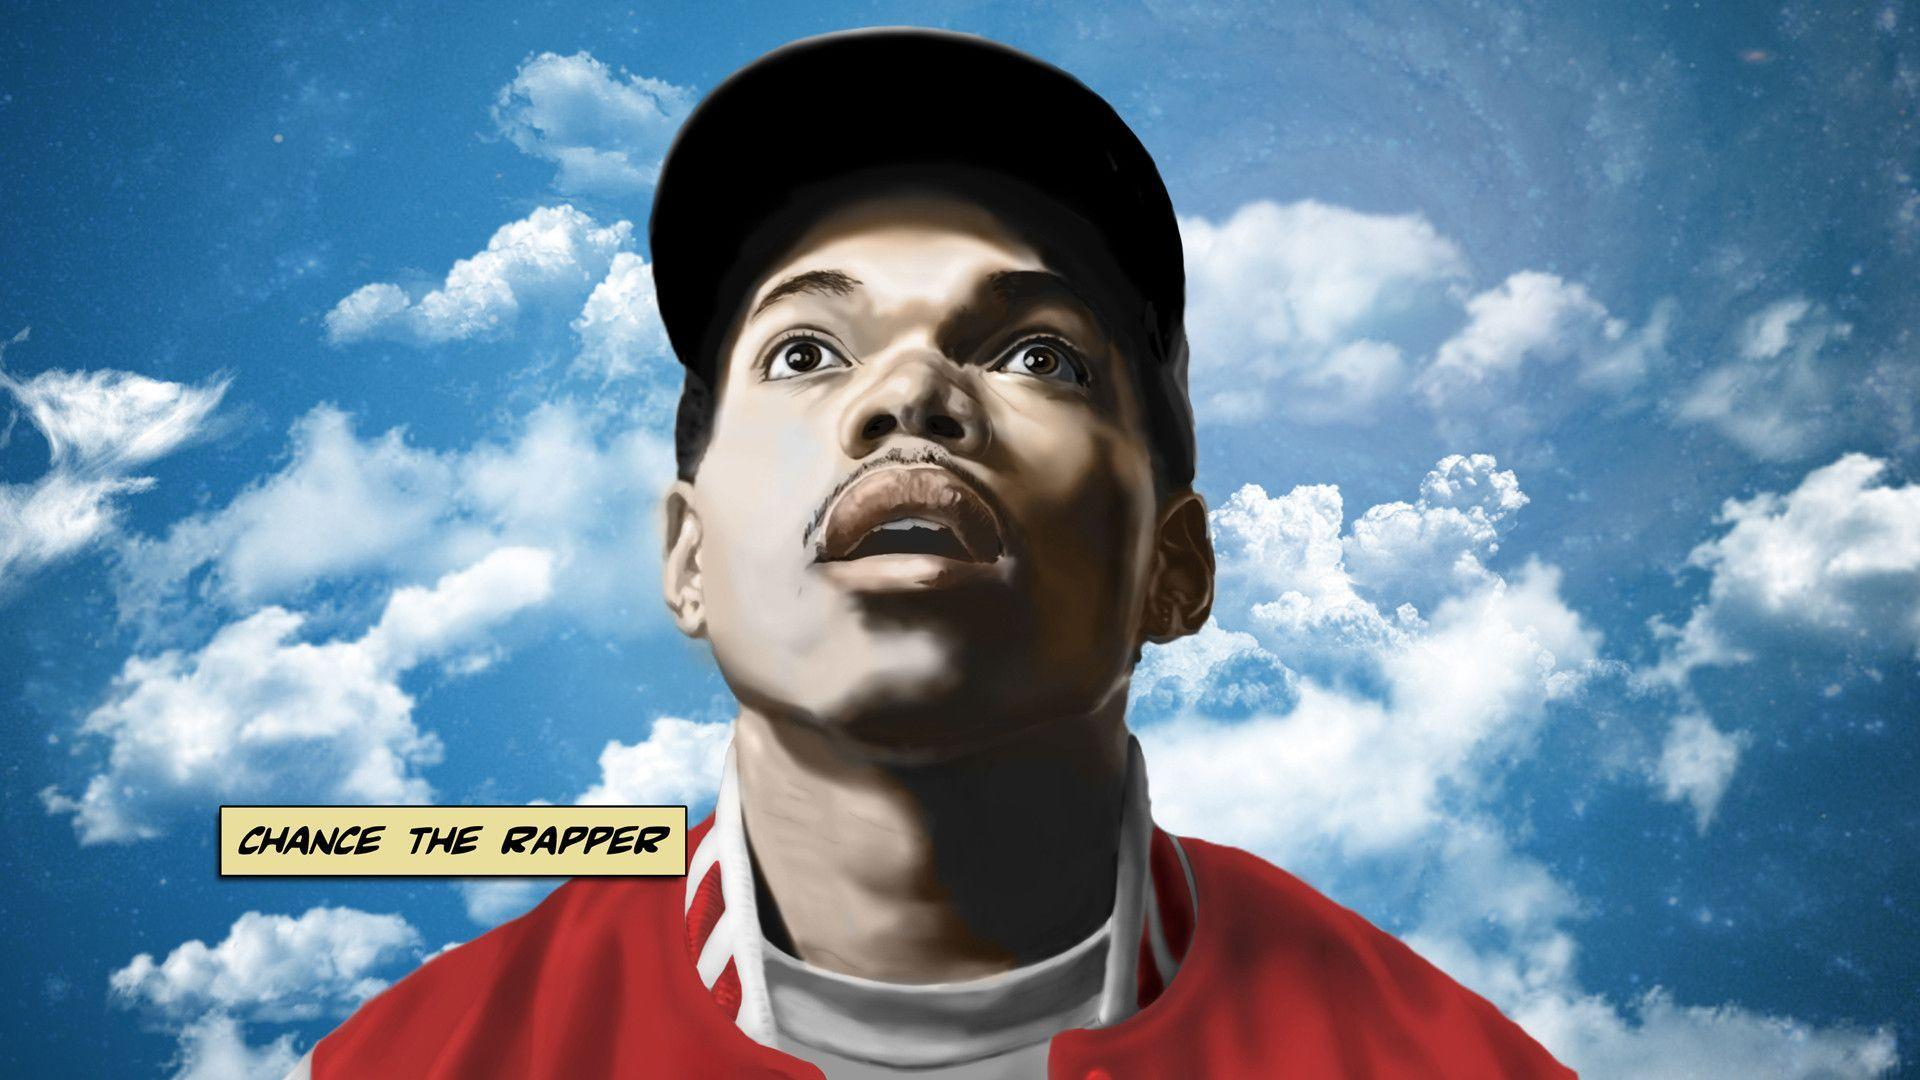 Chance The Rapper Computer Wallpapers, Desktop Backgrounds